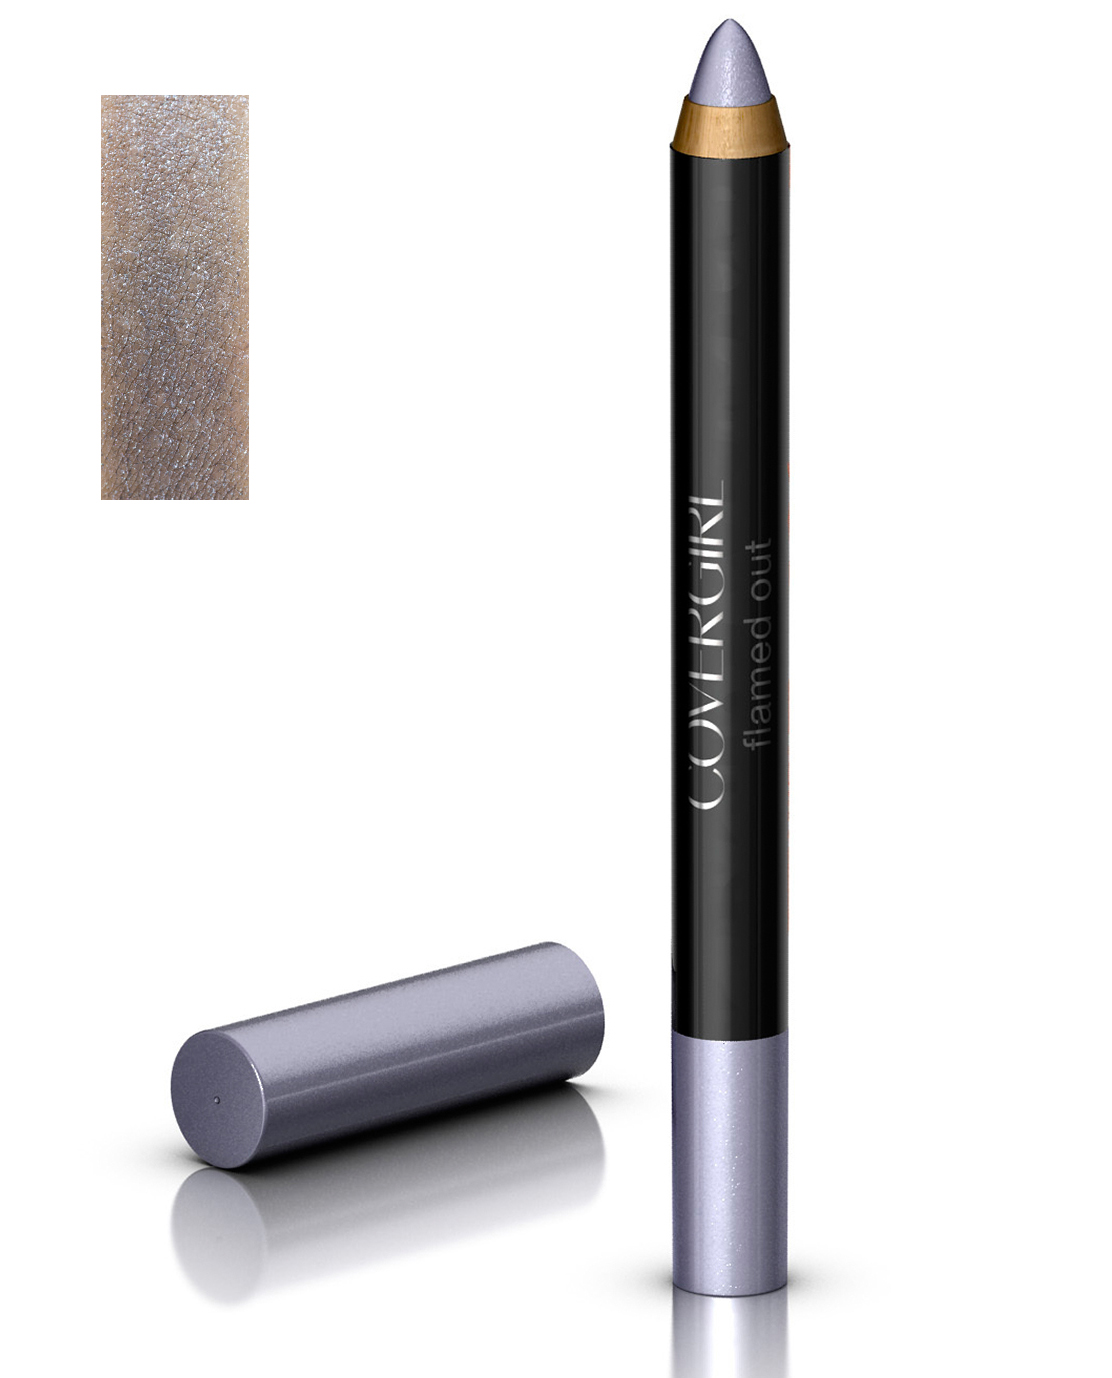 Covergirl Flamed Out Eyeshadow Pencil  - 300 Silver Flame